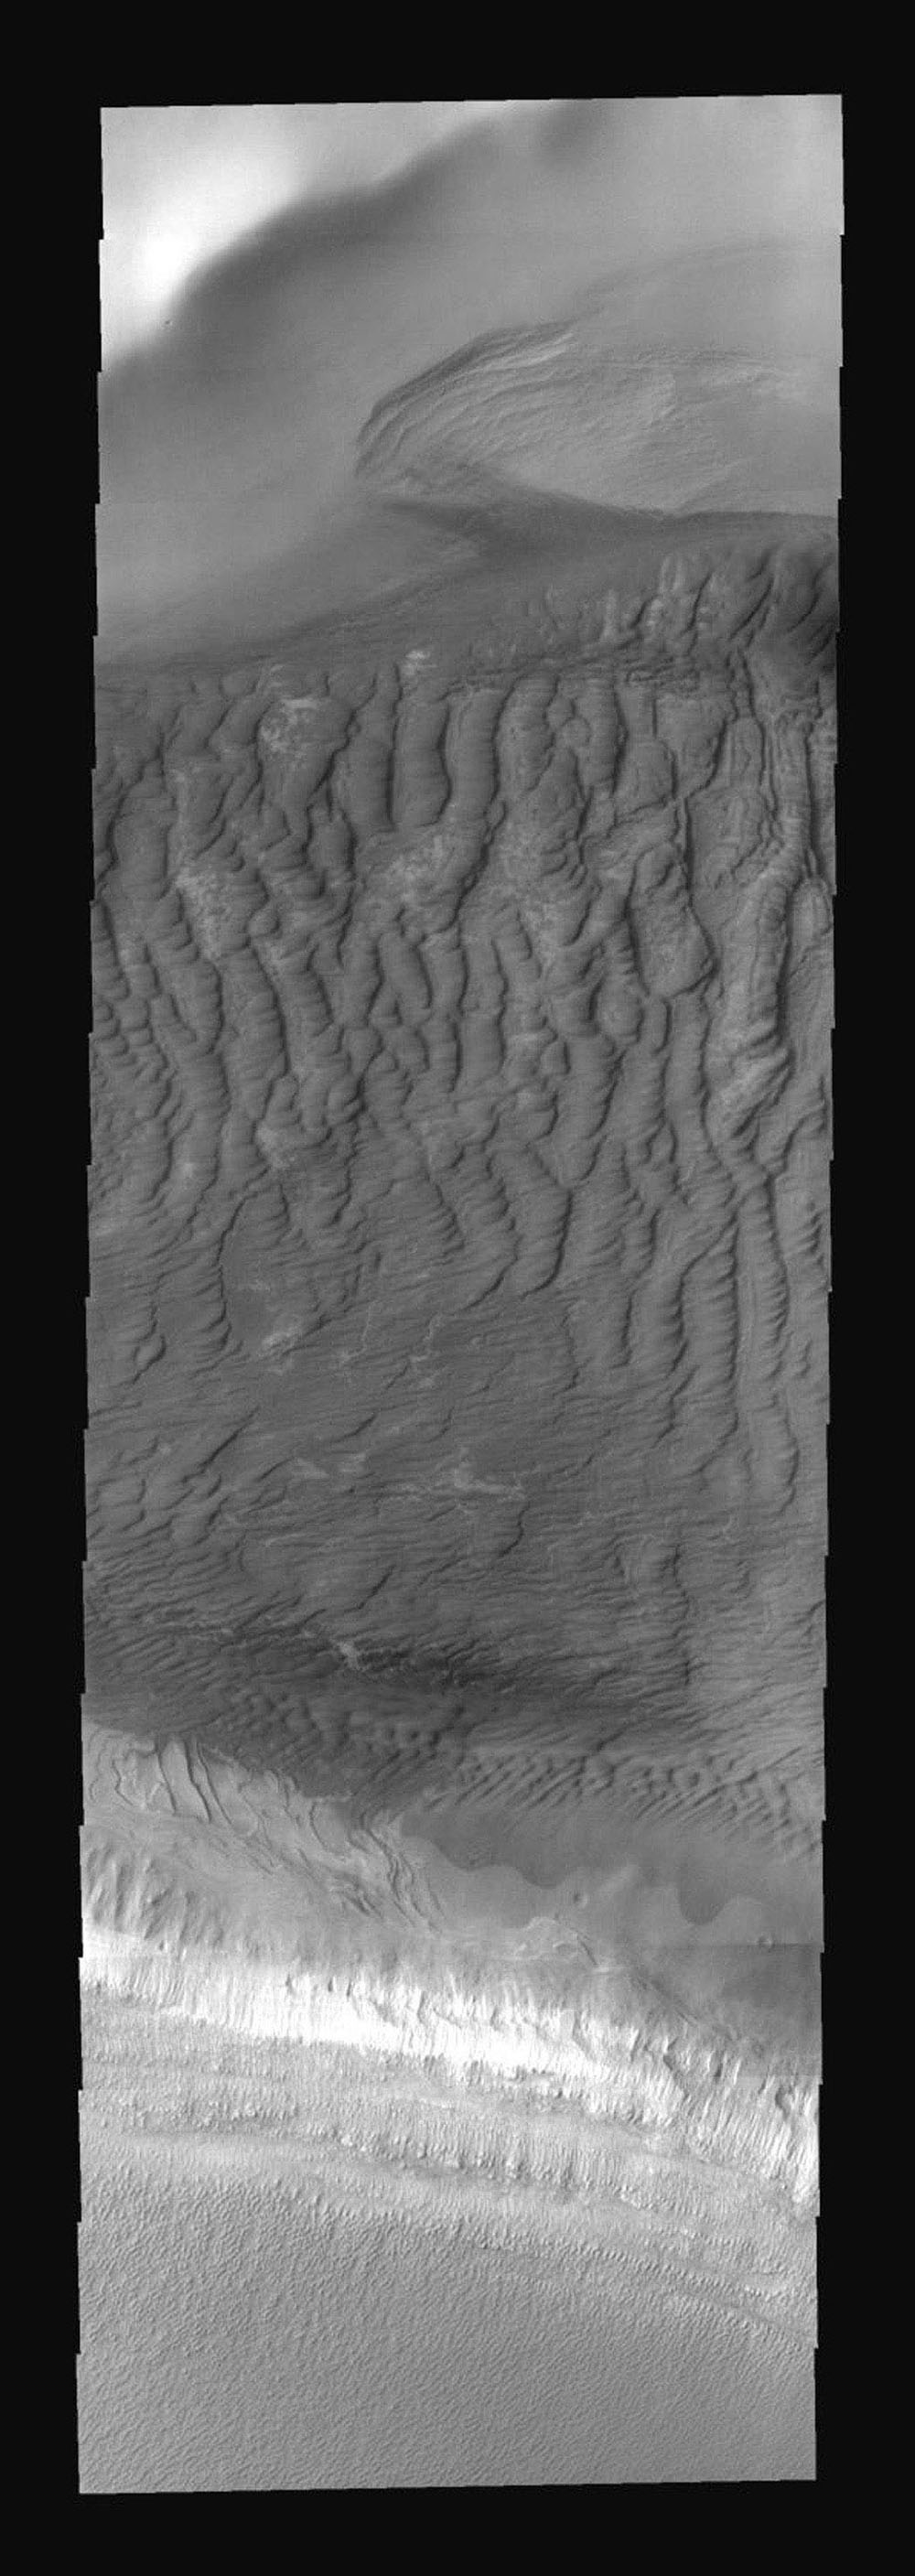 These sand dunes are part of the sand sea that surrounds the south polar cap on Mars as seen by NASA's Mars Odyssey spacecraft.